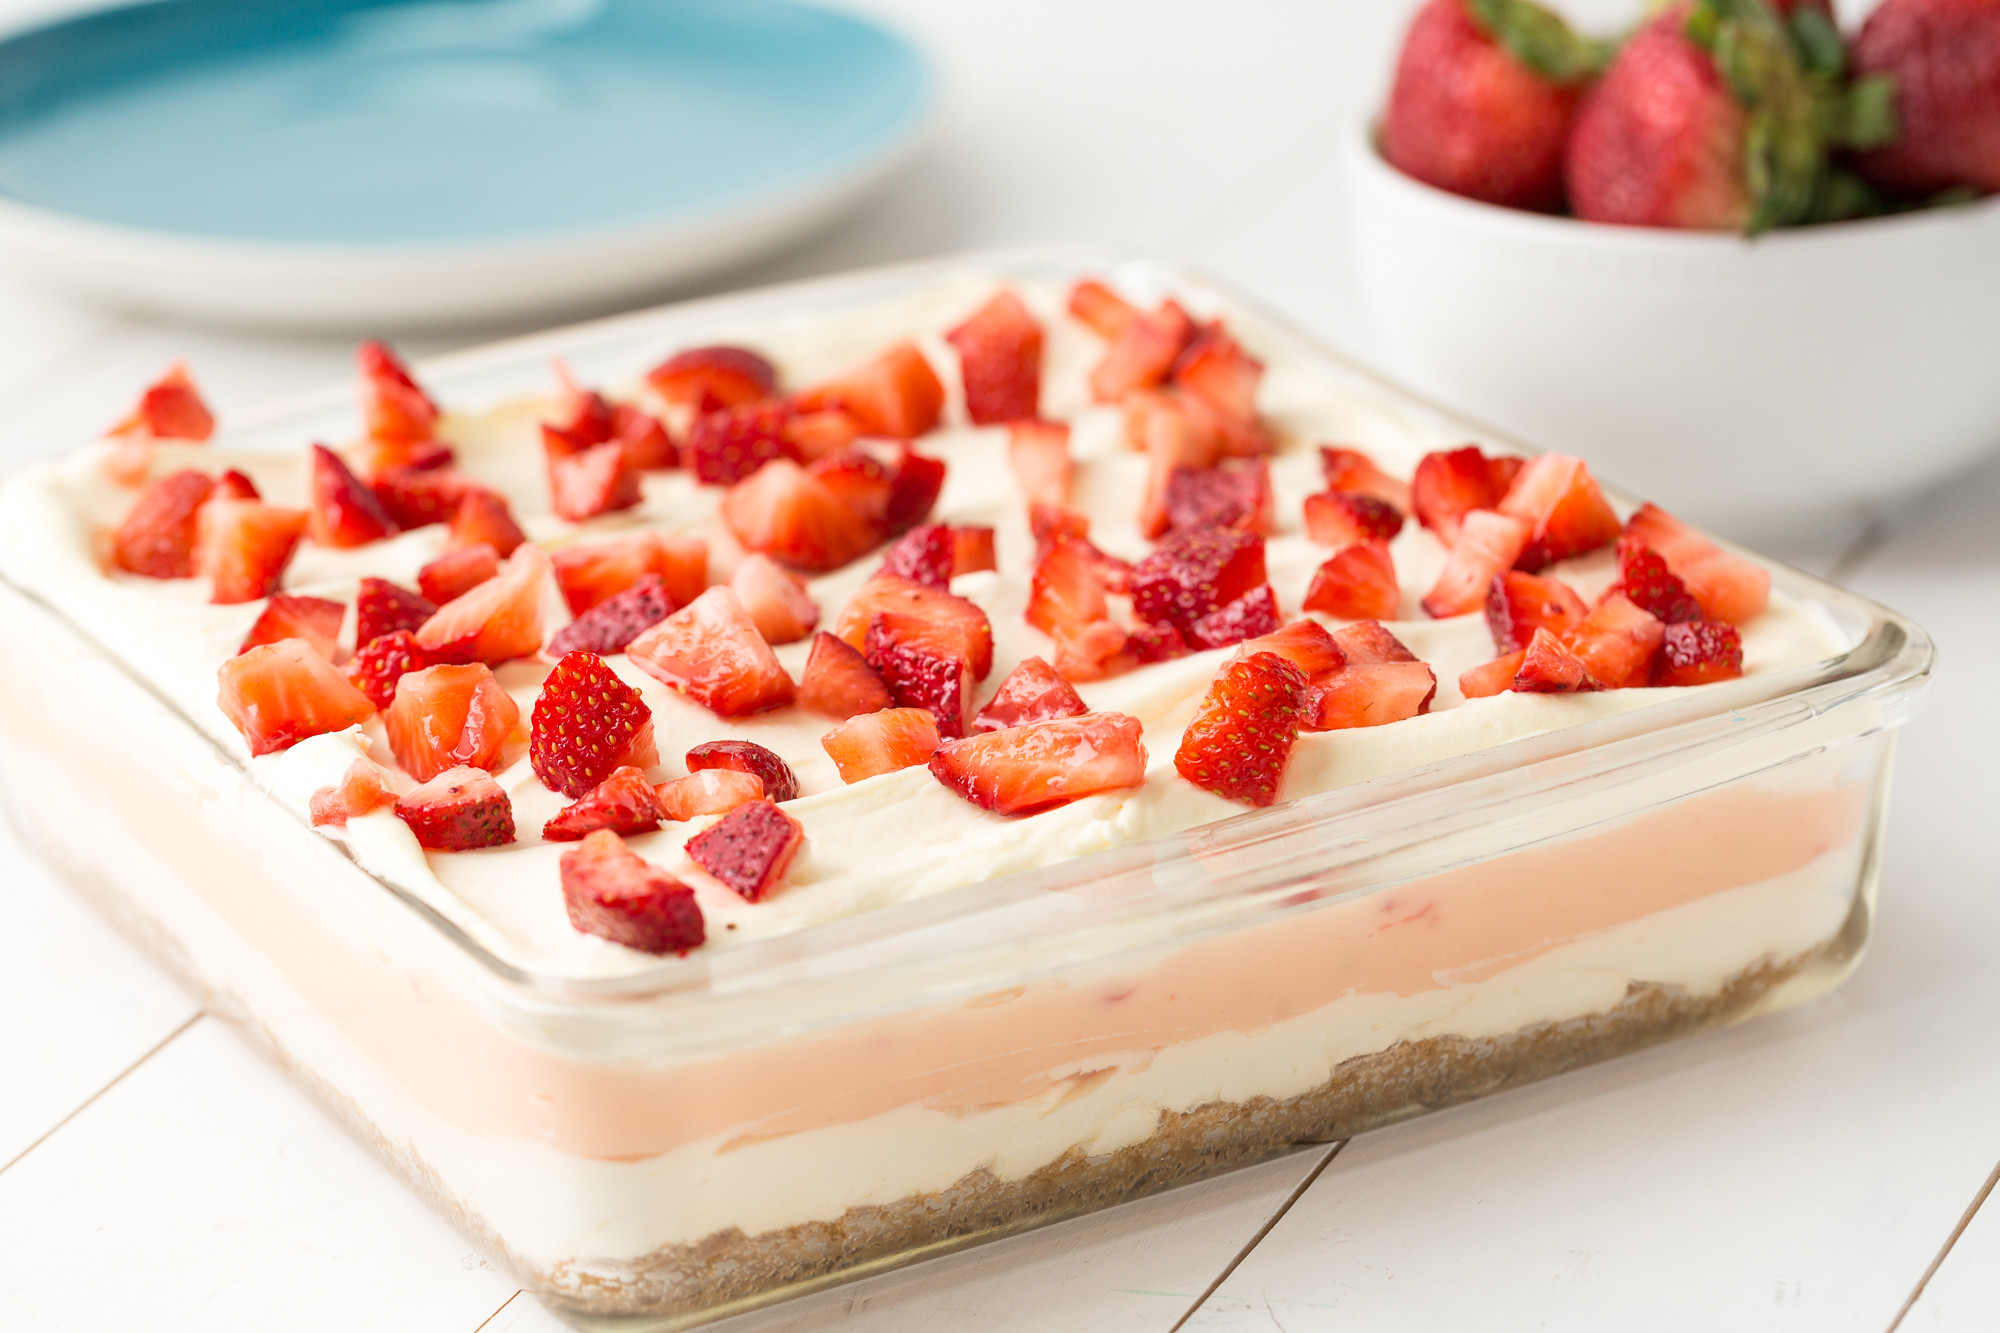 Strawberry Dessert Recipes Easy  15 Easy Strawberry Desserts Recipes for Fresh Strawberry